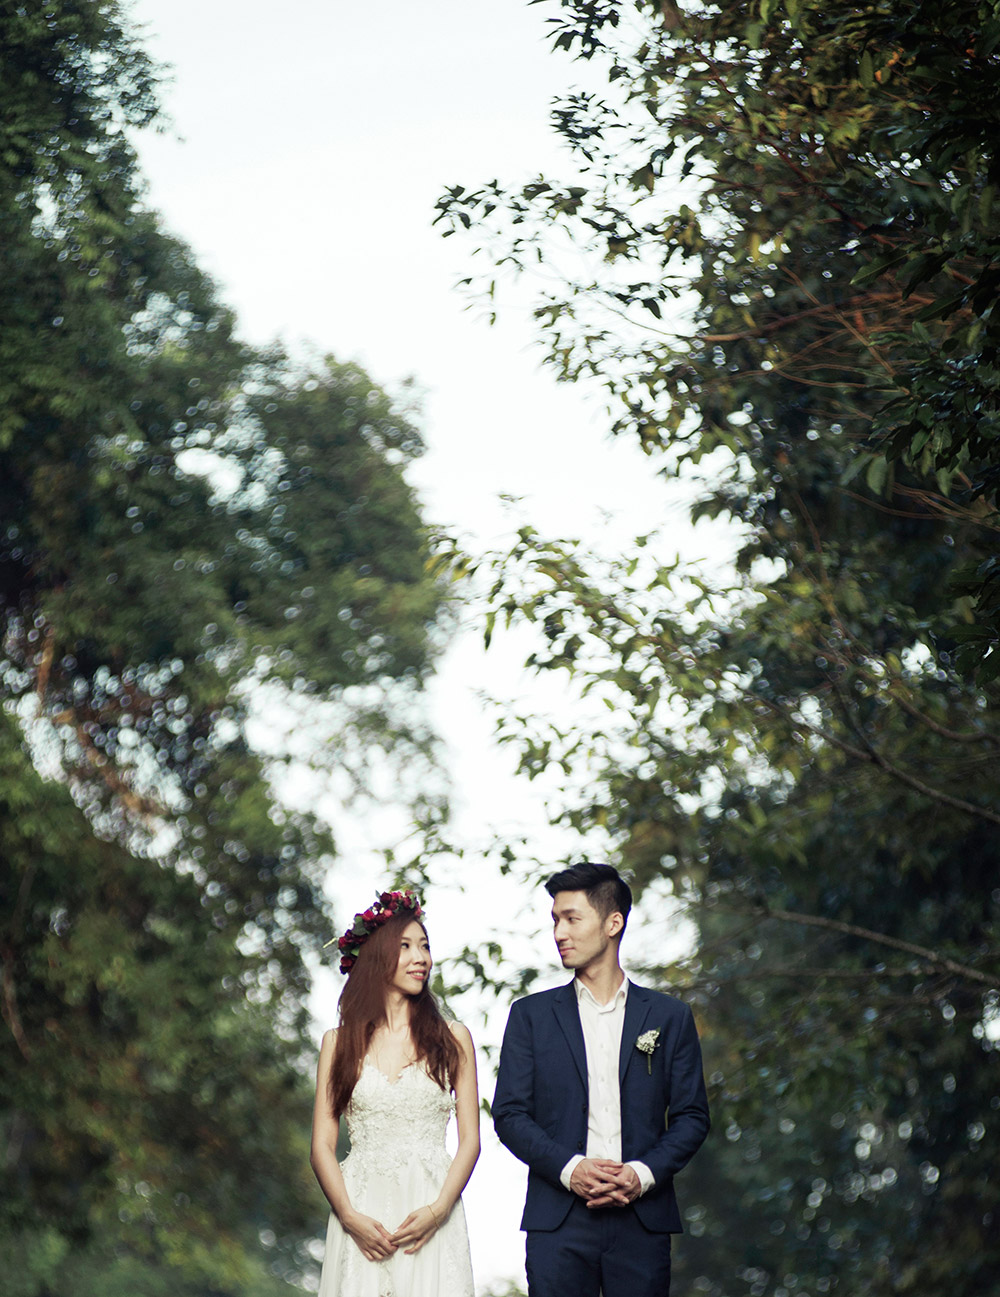 Photo by Catking photography. www.theweddingnotebook.com